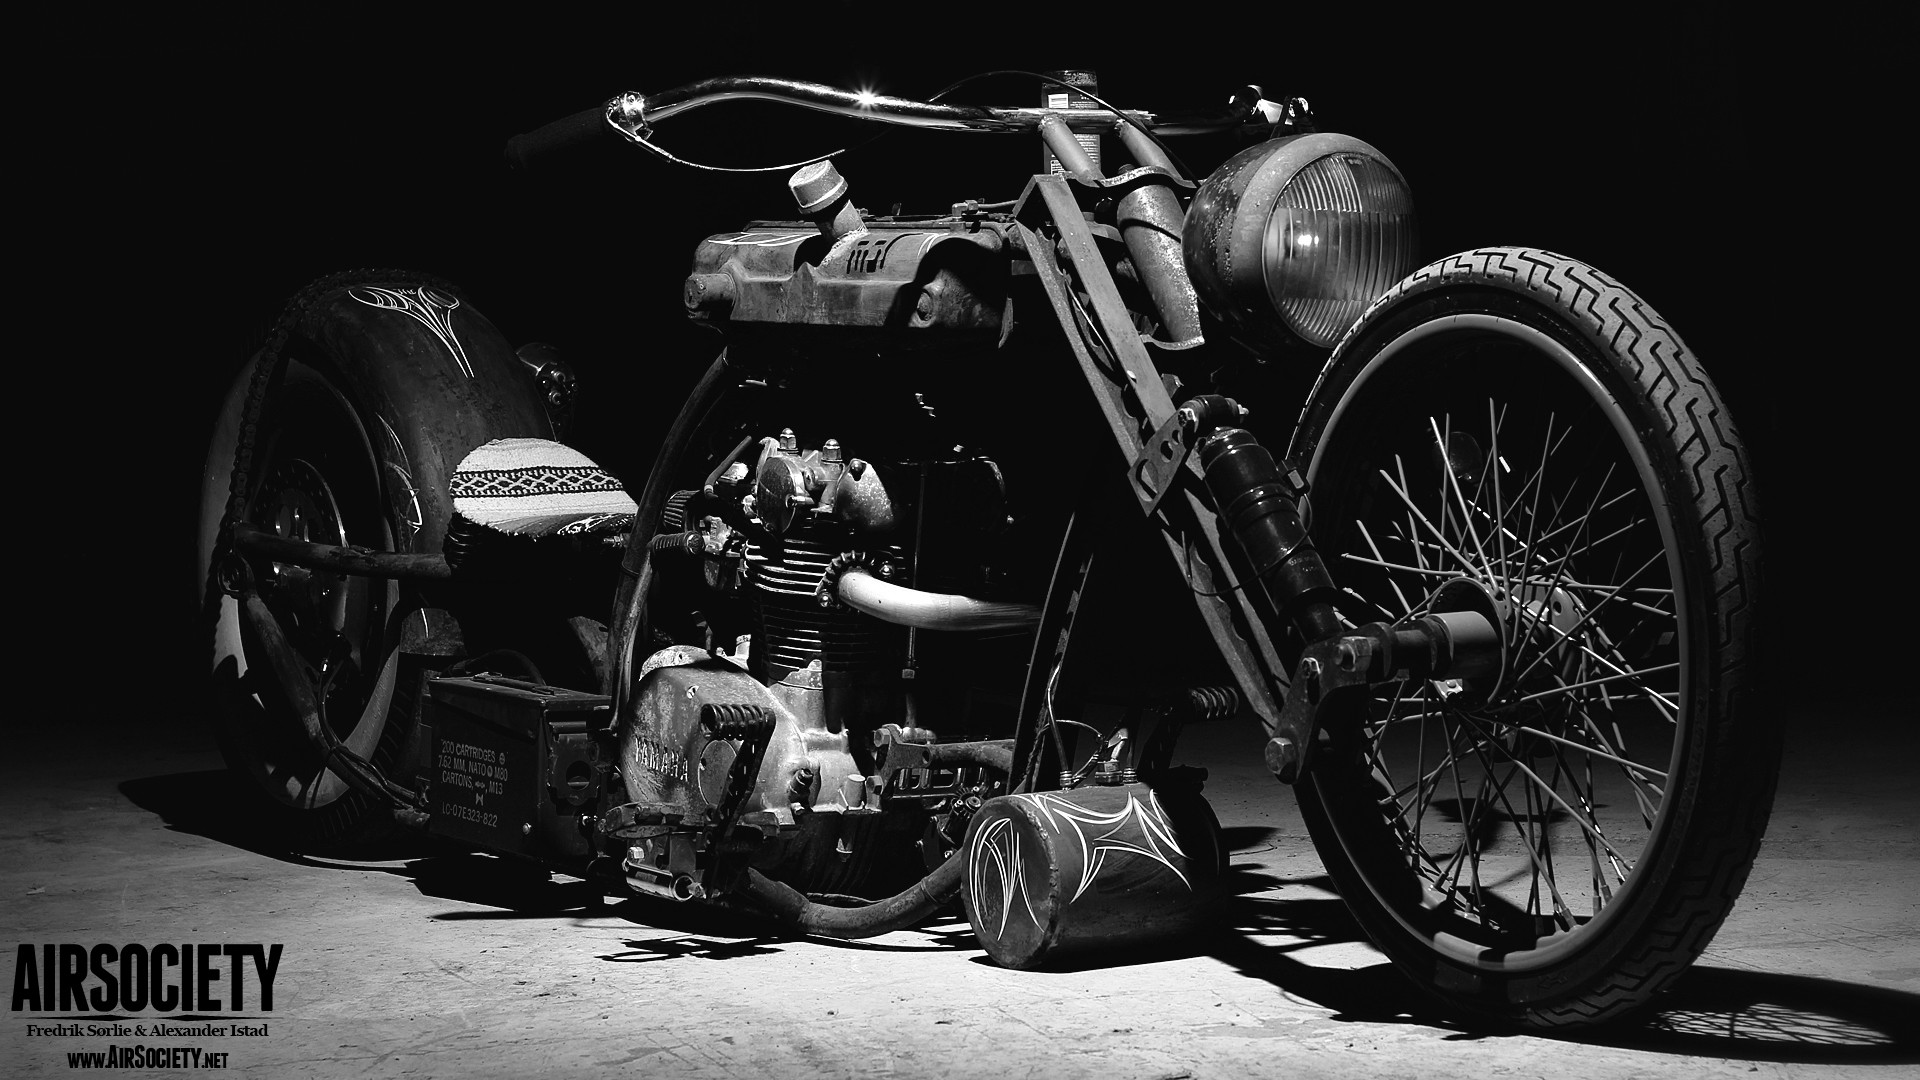 1920x1080 ... rat-bike-air-ride-suspension-bagged-rust-motorcycle- ...